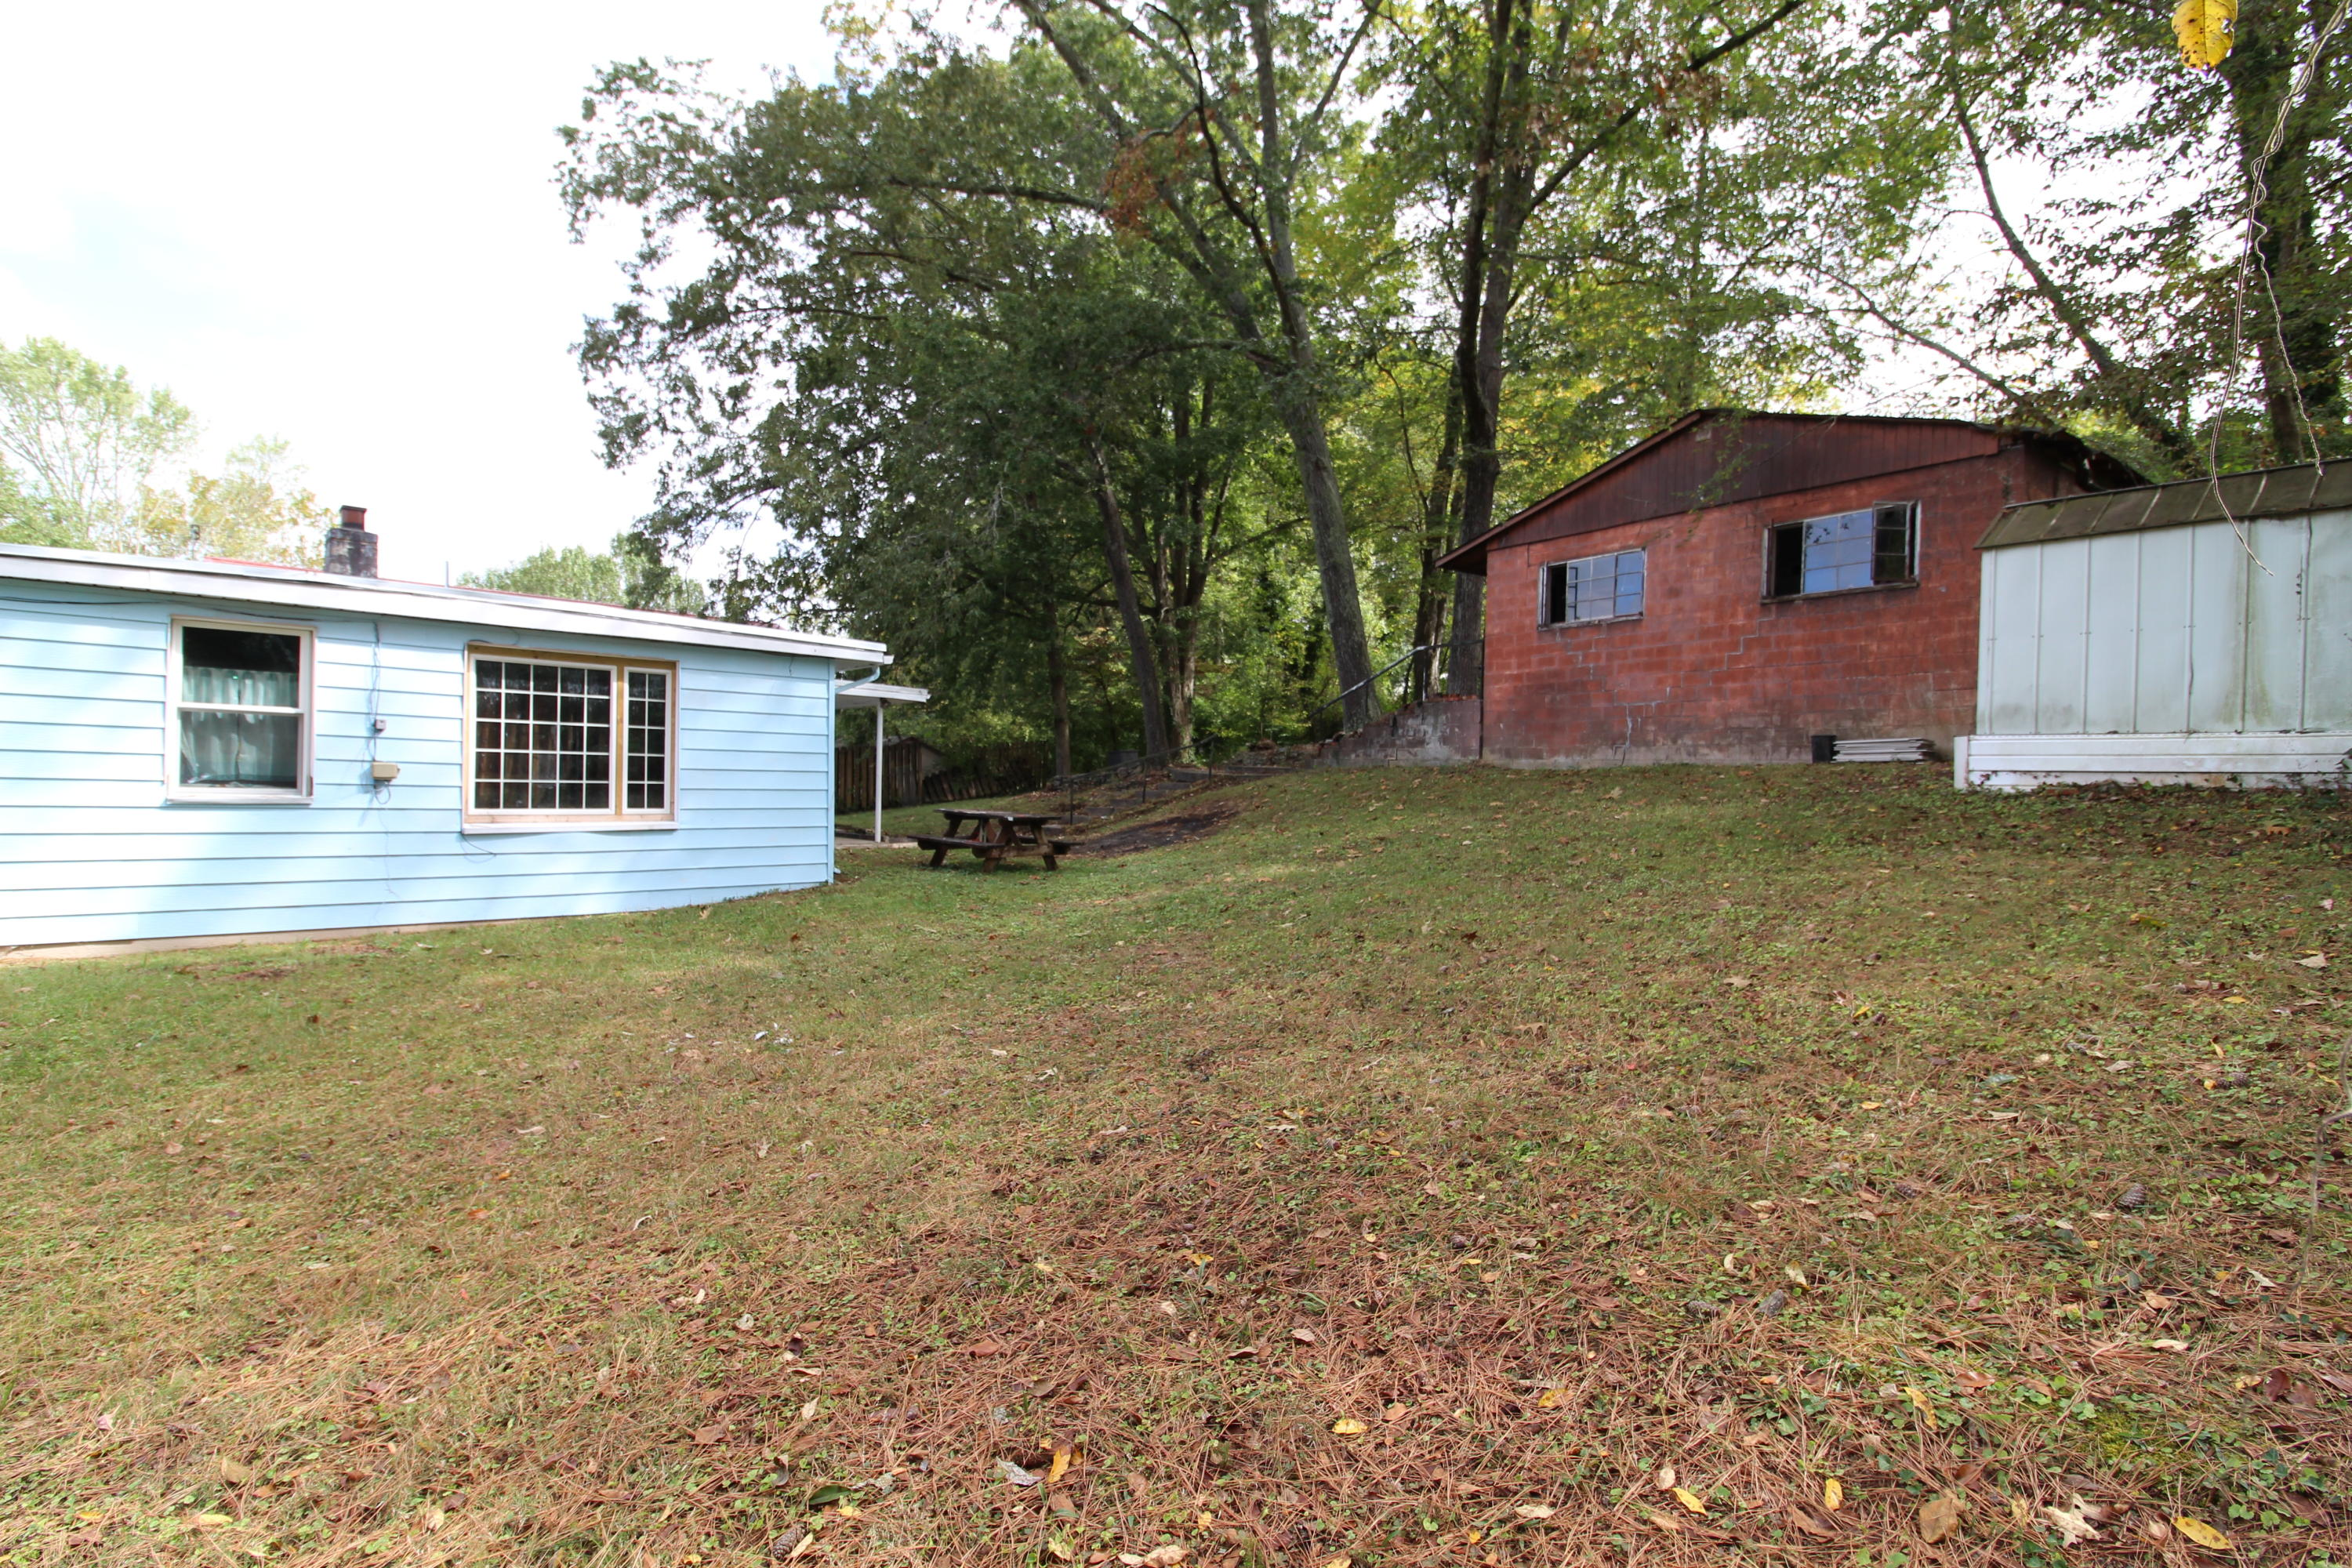 195 Manhattan Ave, Oak Ridge, Tennessee 37830, 3 Bedrooms Bedrooms, ,1 BathroomBathrooms,Single Family,For Sale,Manhattan,1097192